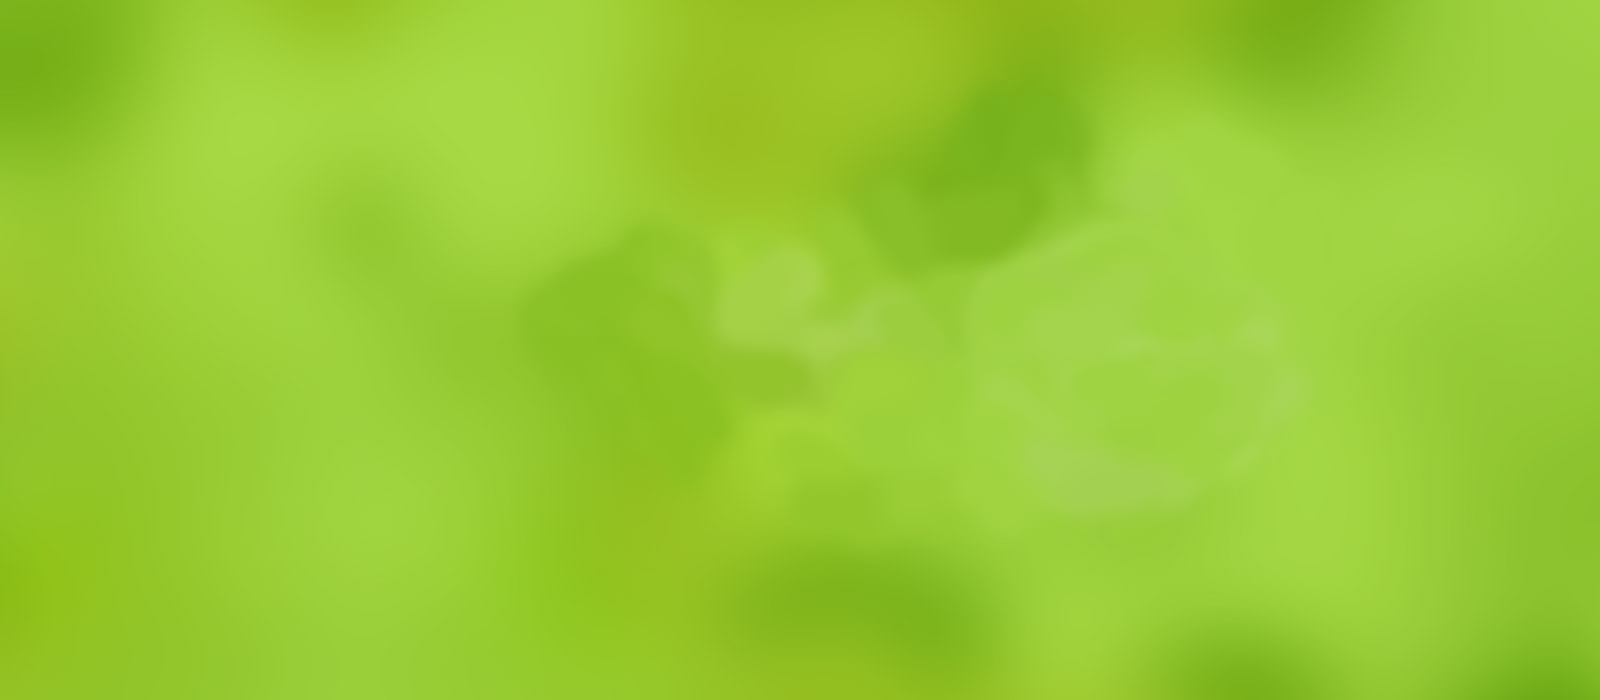 green-background-social-slider-1600-700